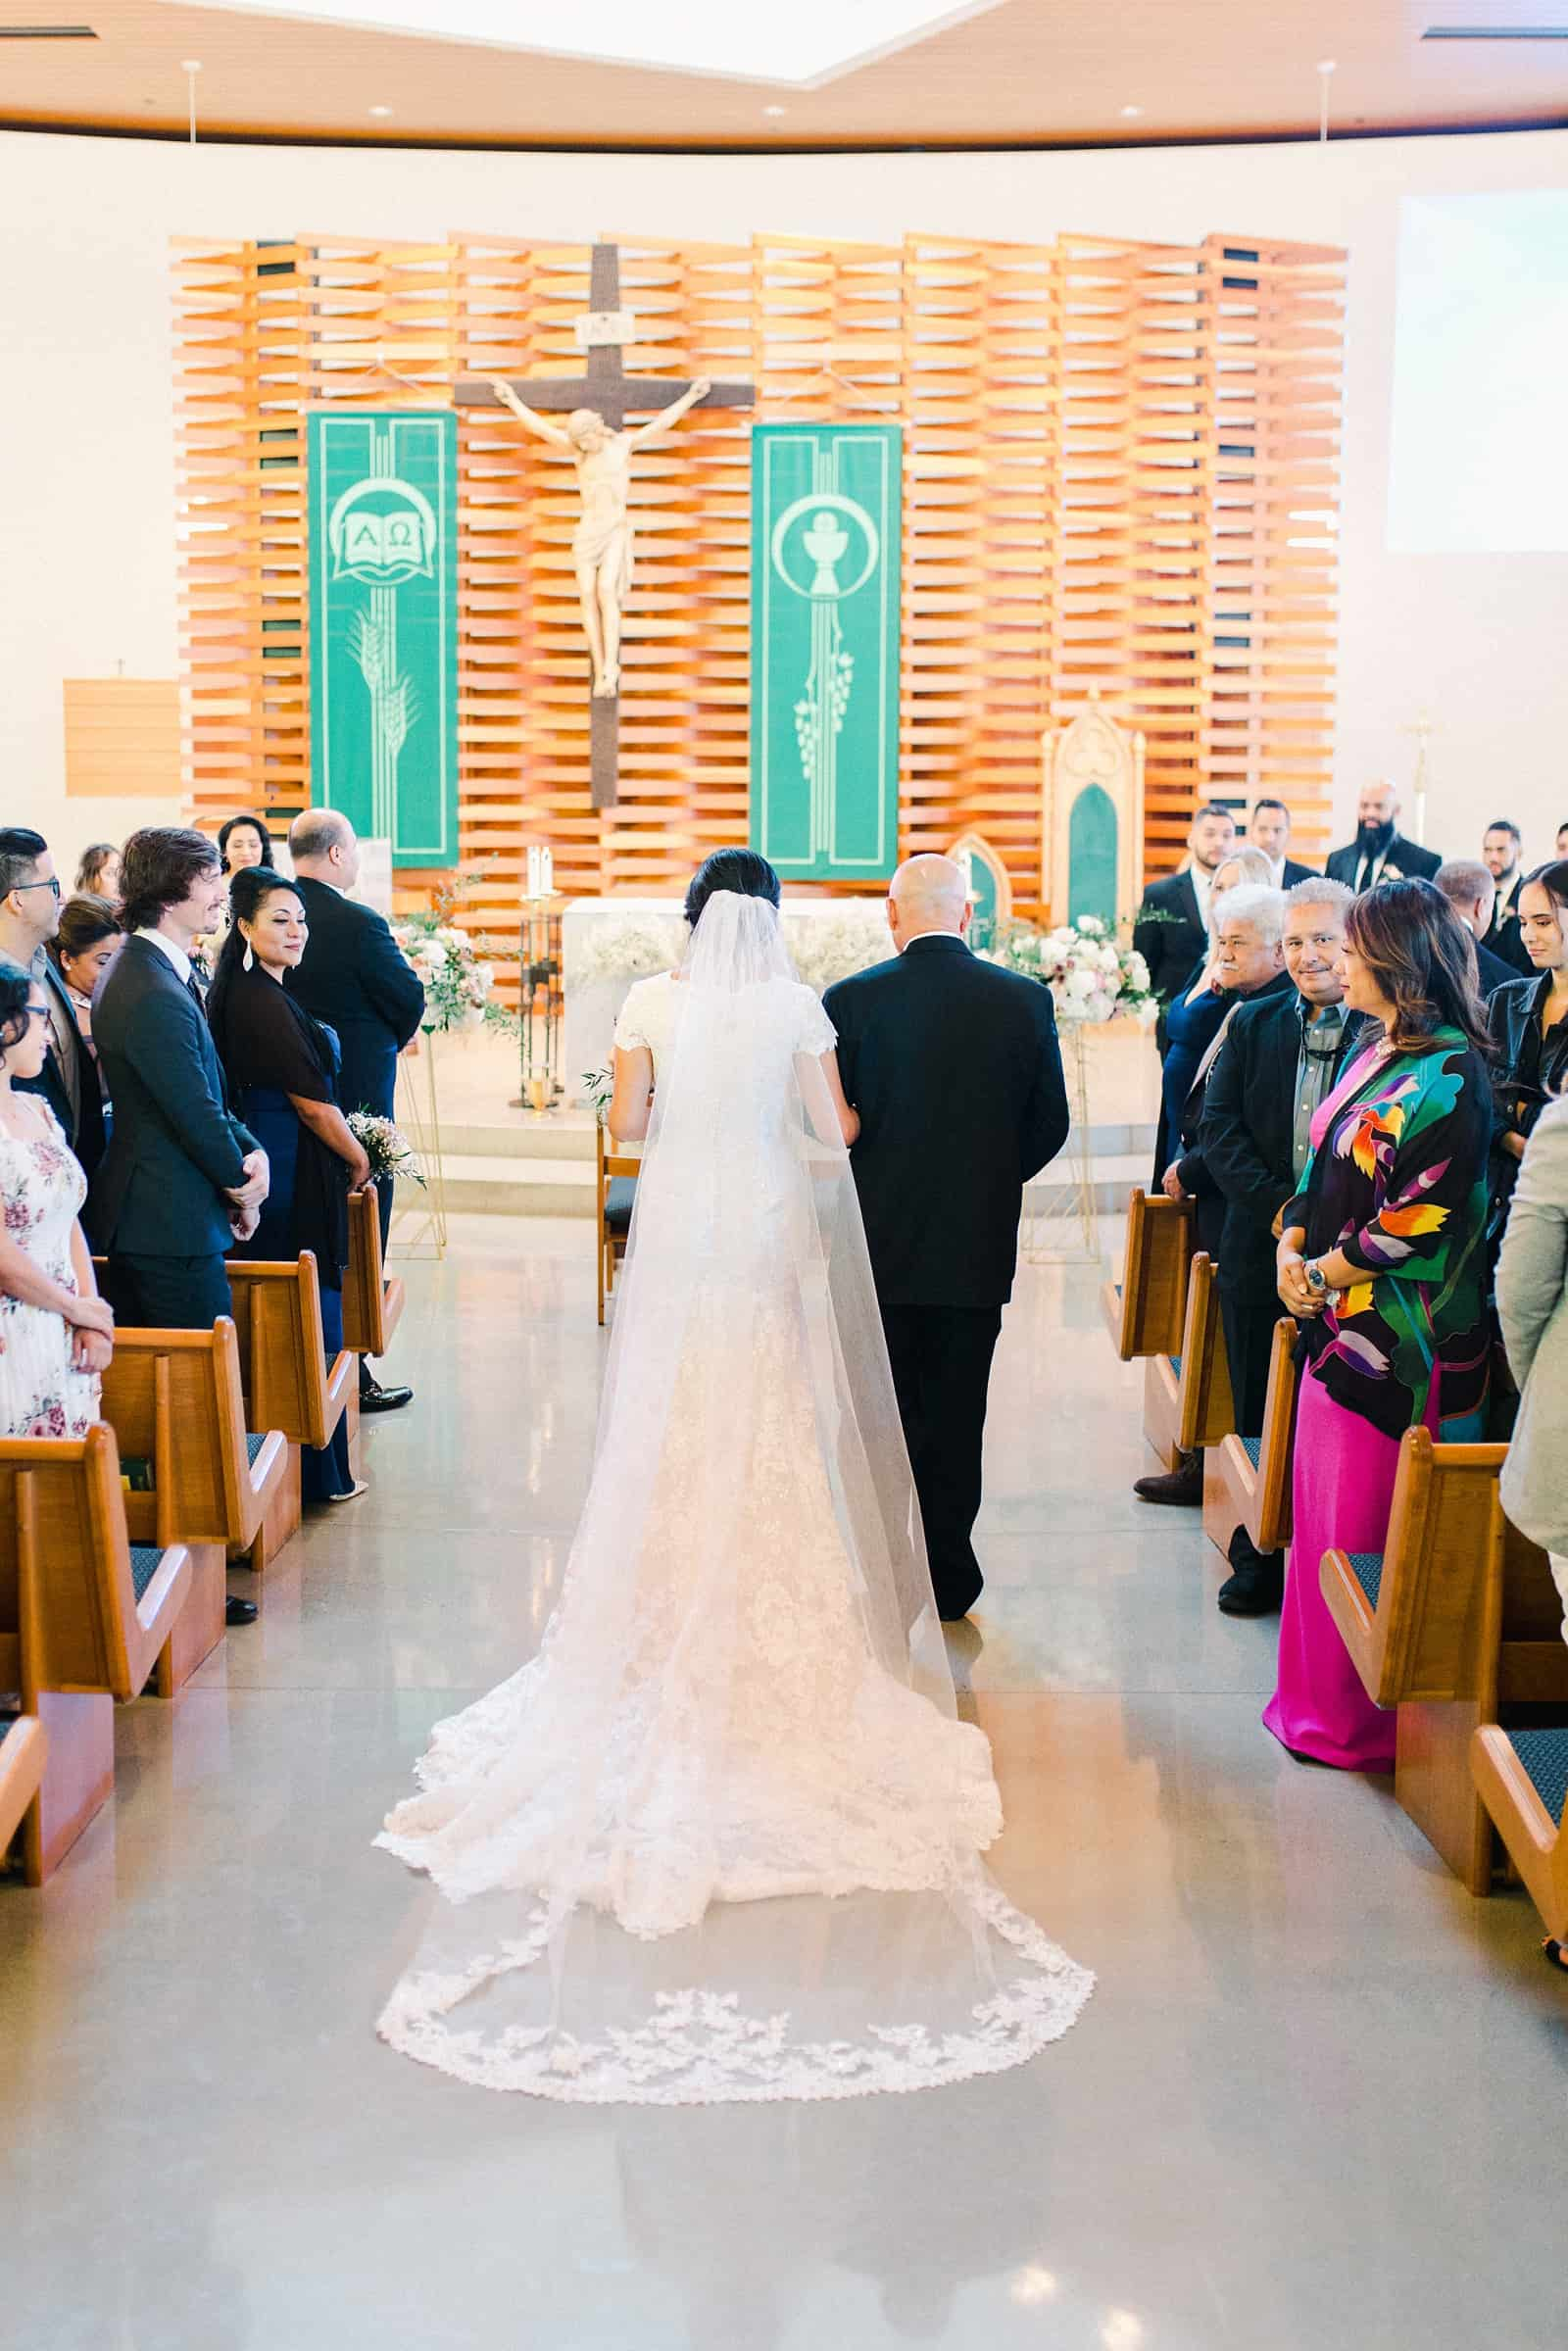 father of the bride walks her down the aisle in traditional Catholic ceremony